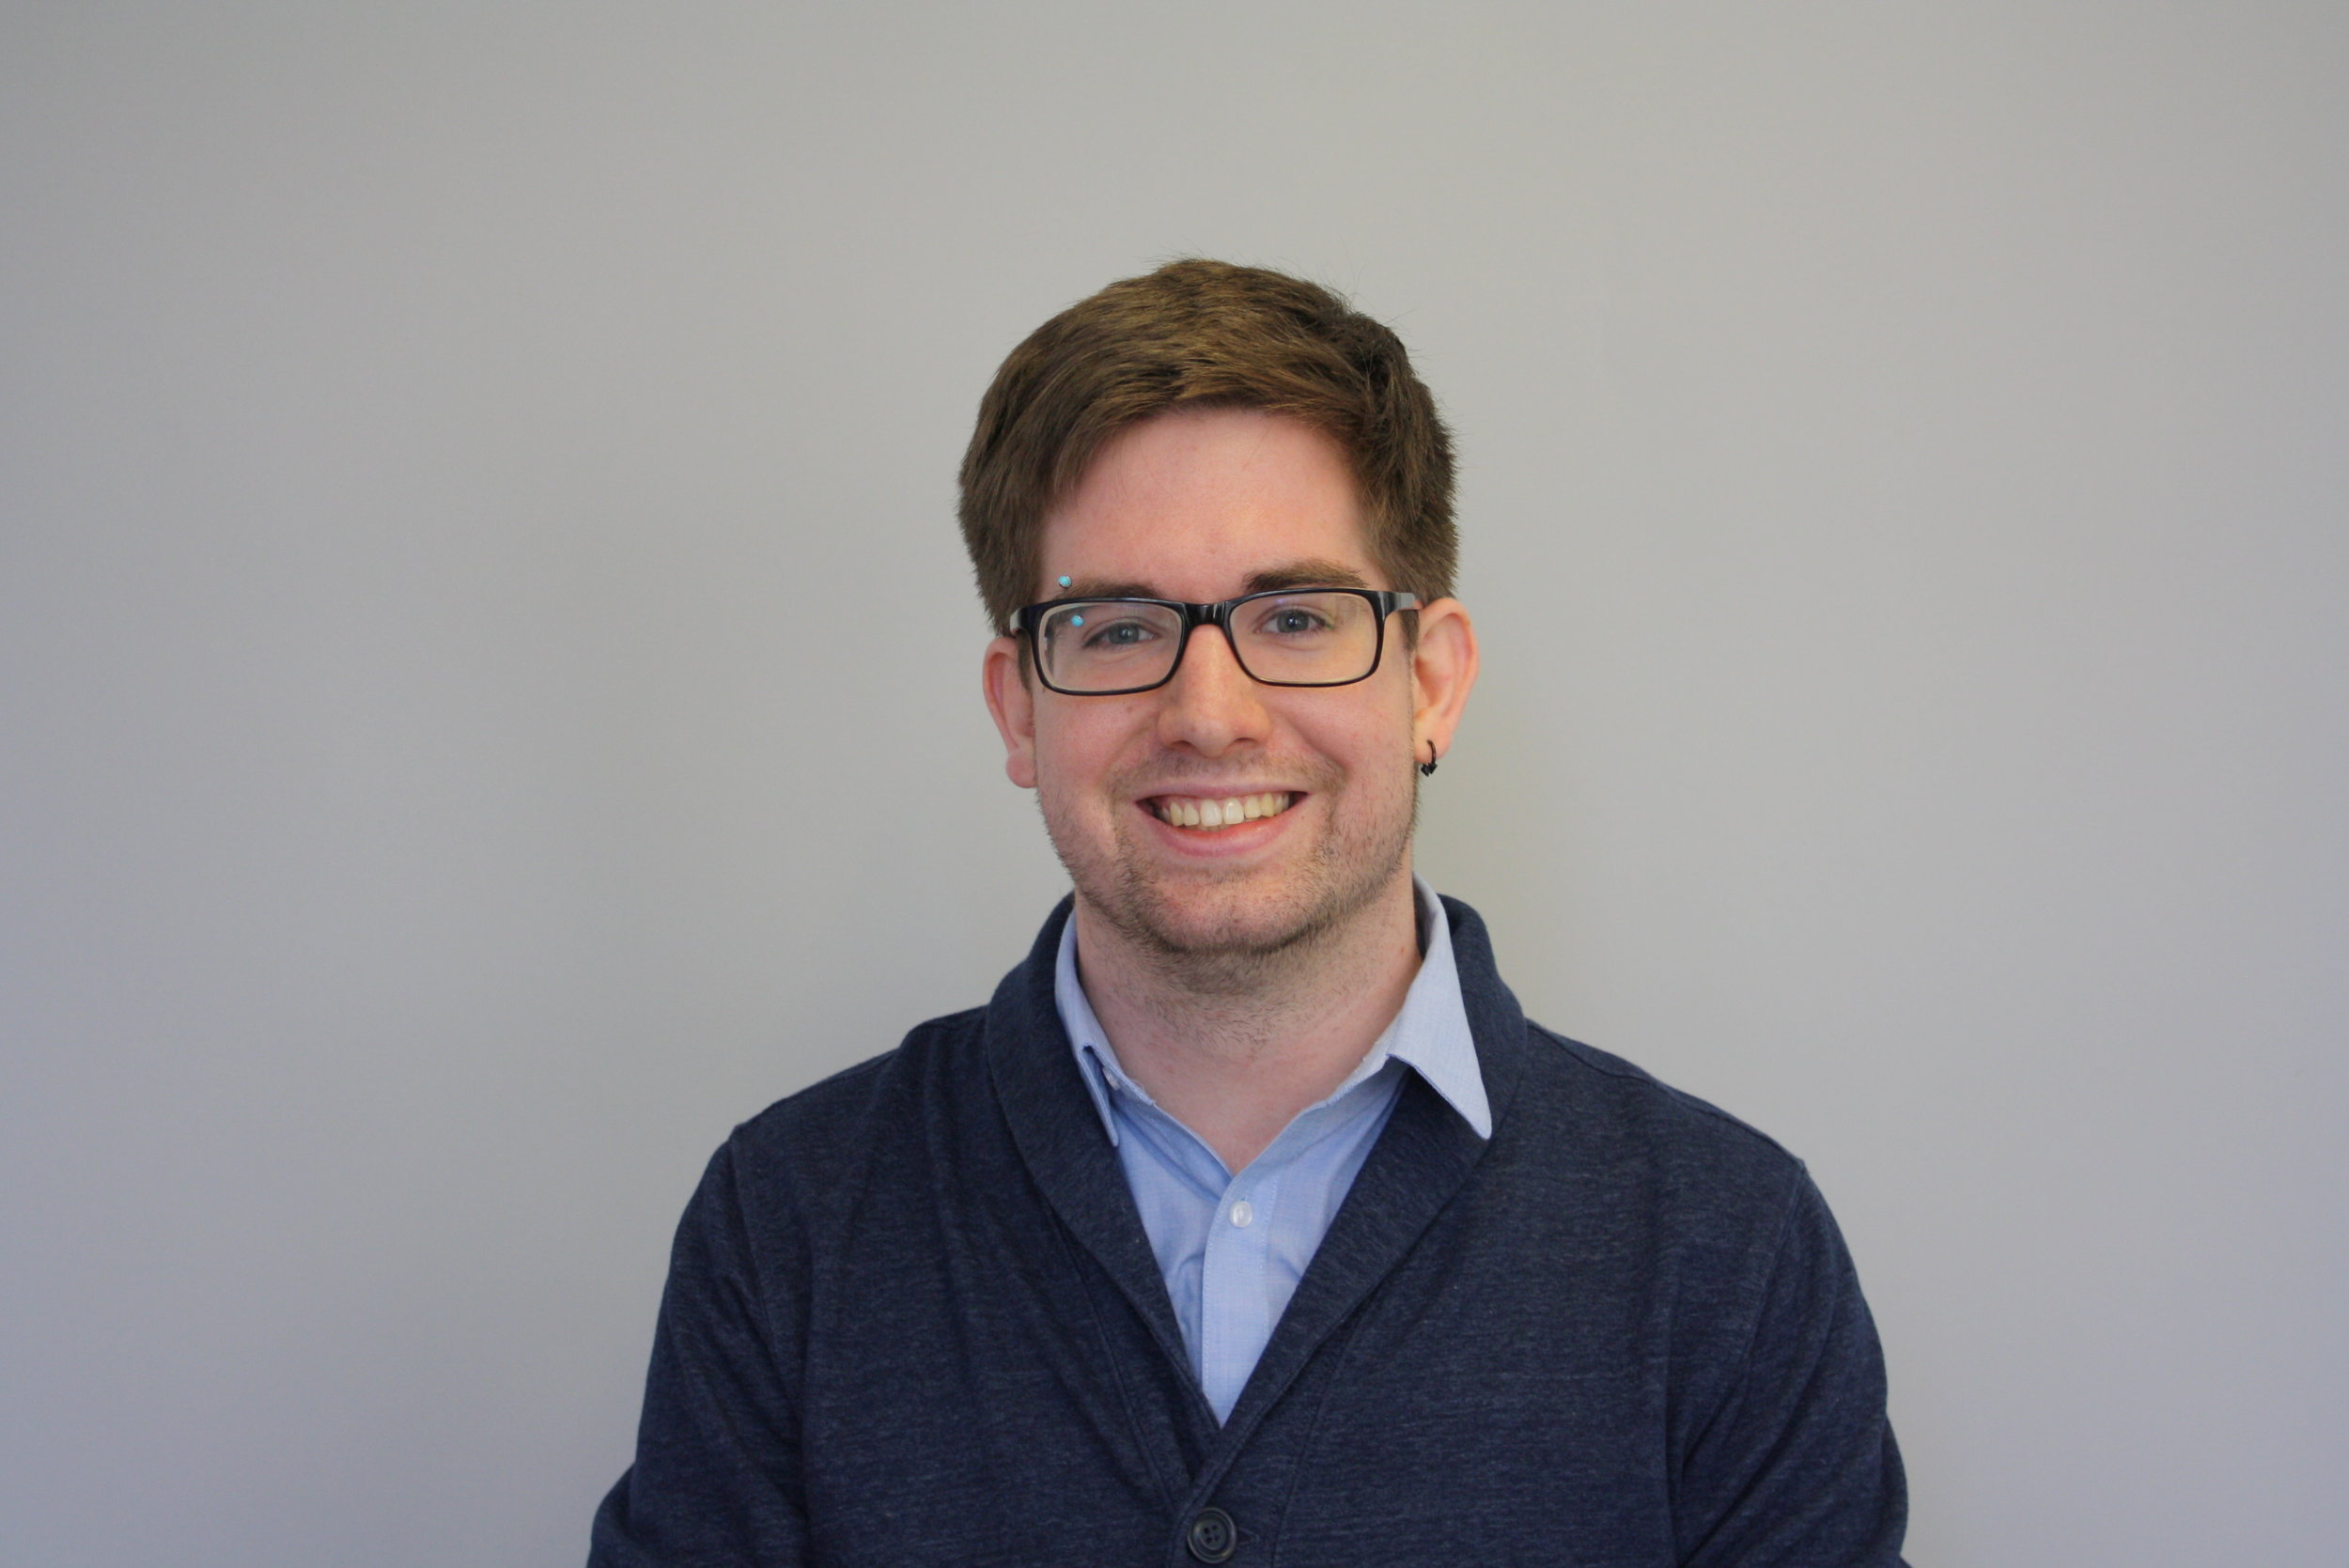 Jared Wolf - Jared Wolf is the Media Manager at Crisis Text Line, where he was previously a Crisis Counselor Trainer. His hobbies include stand-up comedy and playing the piano.